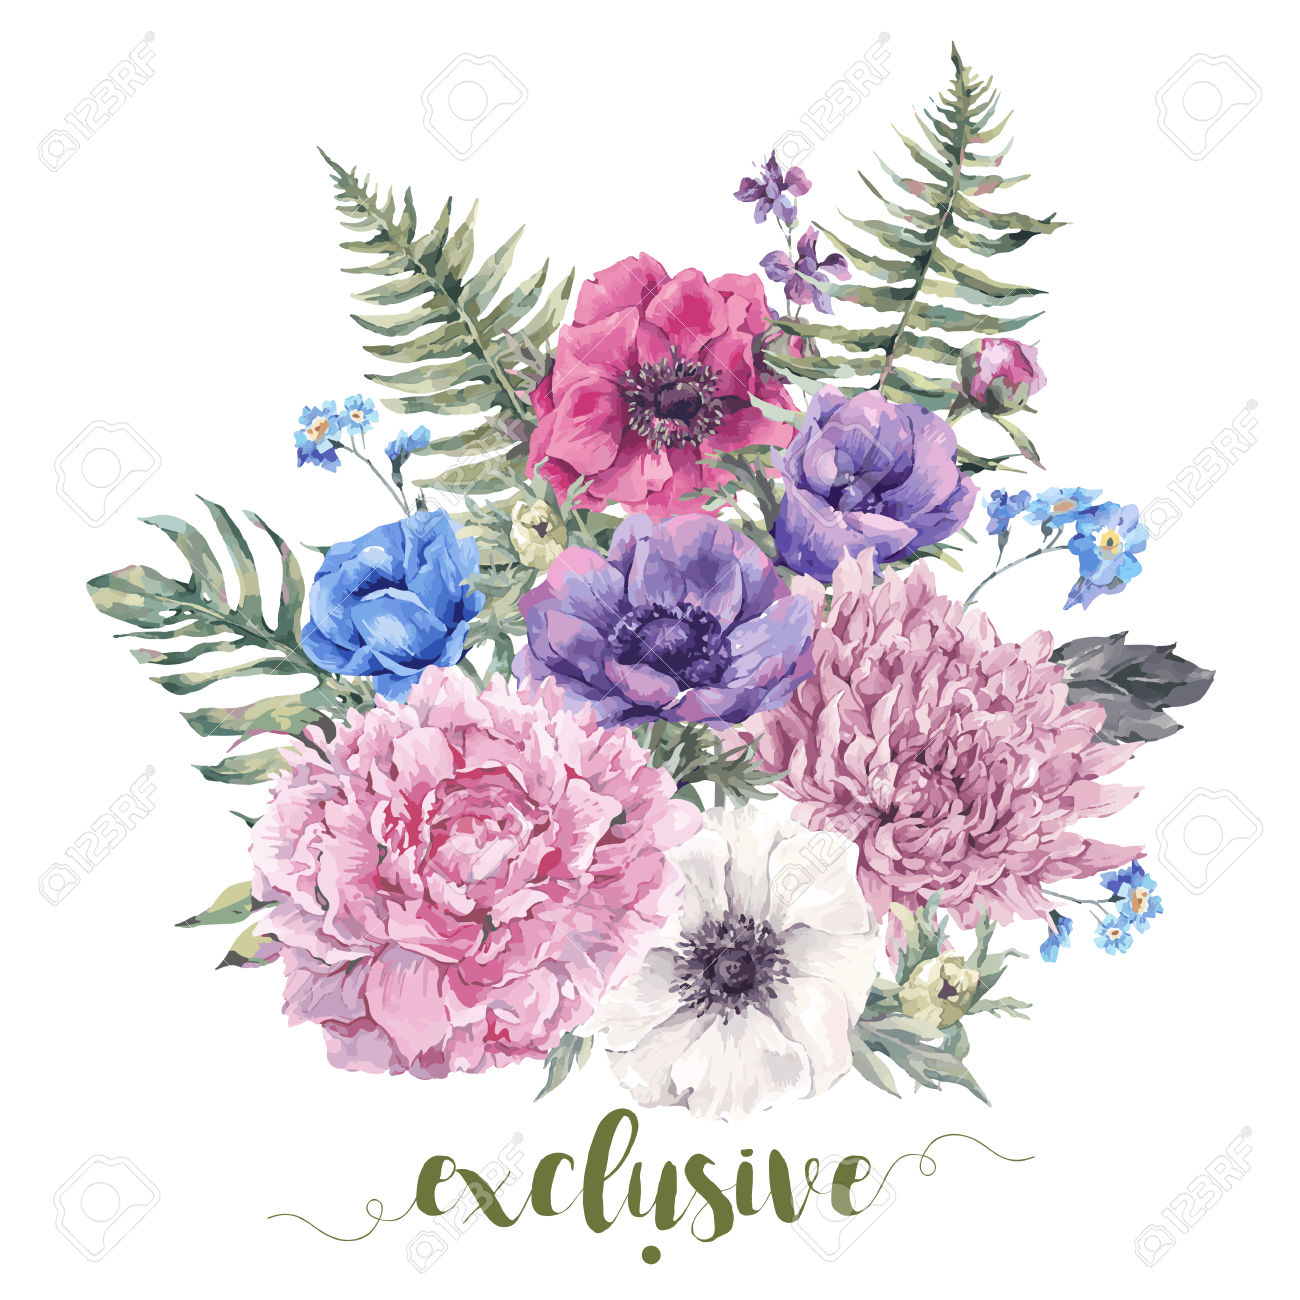 Summer Vintage Floral Greeting Card With Blooming Anemones, Peony.